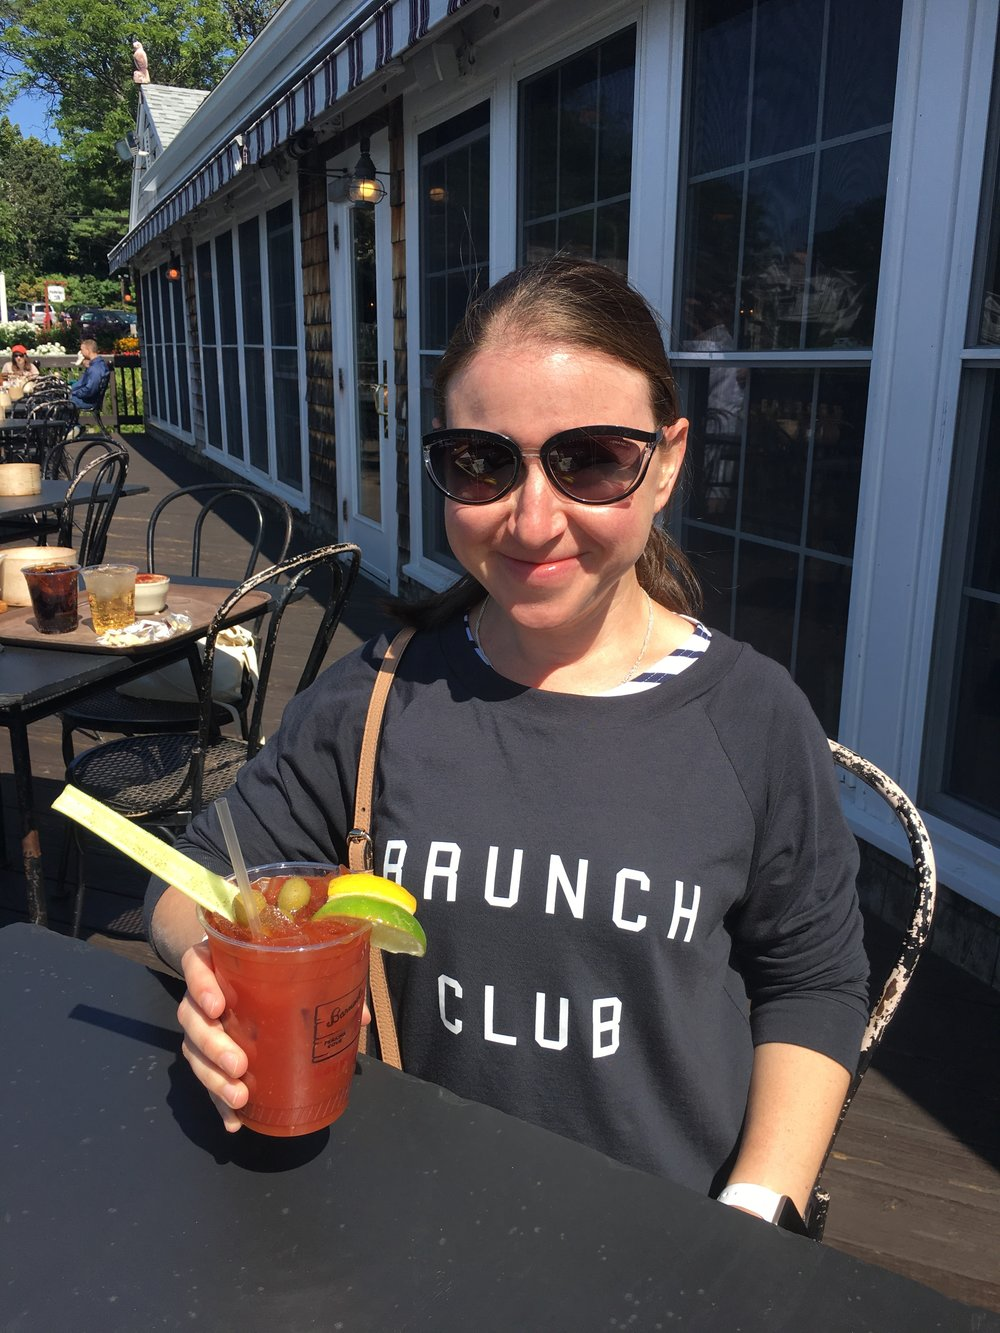 Yes, that's a Brunch Club shirt. I freaking love it. Softest shirt ever. And a bit appropriate (ironic?) given the Bloody Mary. C'est la vie!